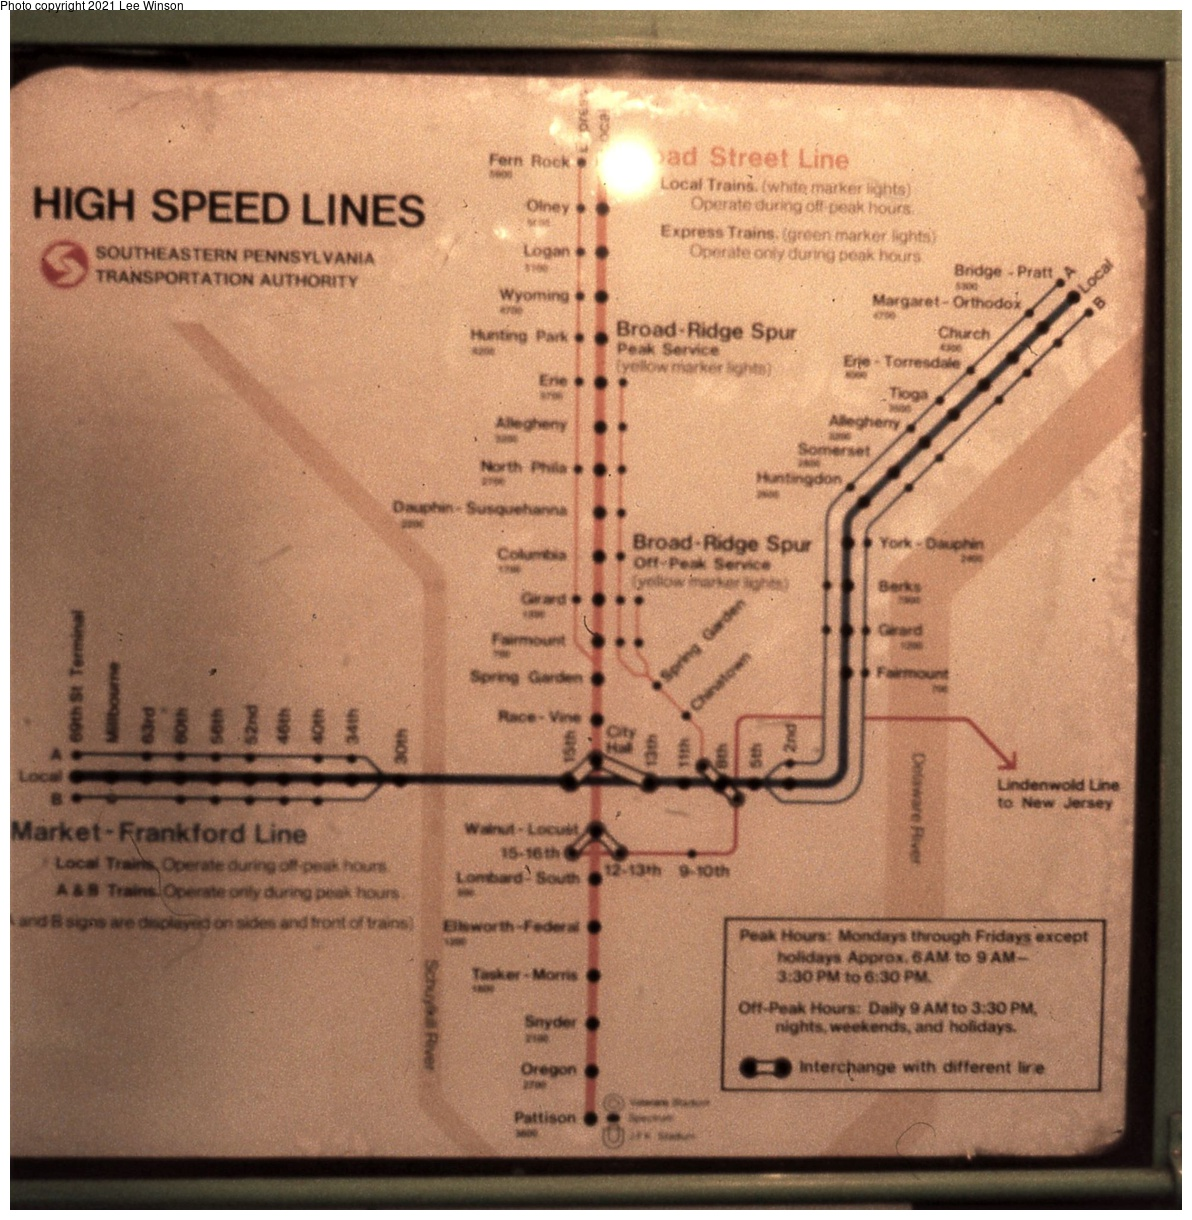 (498k, 1192x1220)<br><b>Country:</b> United States<br><b>City:</b> Philadelphia, PA<br><b>System:</b> SEPTA (or Predecessor)<br><b>Line:</b> Broad Street Subway<br><b>Location:</b> Broad Street Subway-Rolling Stock Interiors<br><b>Photo by:</b> Lee Winson<br><b>Date:</b> 3/1982<br><b>Notes:</b> Graphic style rapid-transit map in use at SEPTA in March 1982.  Shows now closed Ridge Ave-Spring Garden Station, former MFSE Fairmount Station, and discontinued MFSE A/B service.<br><b>Viewed (this week/total):</b> 5 / 38